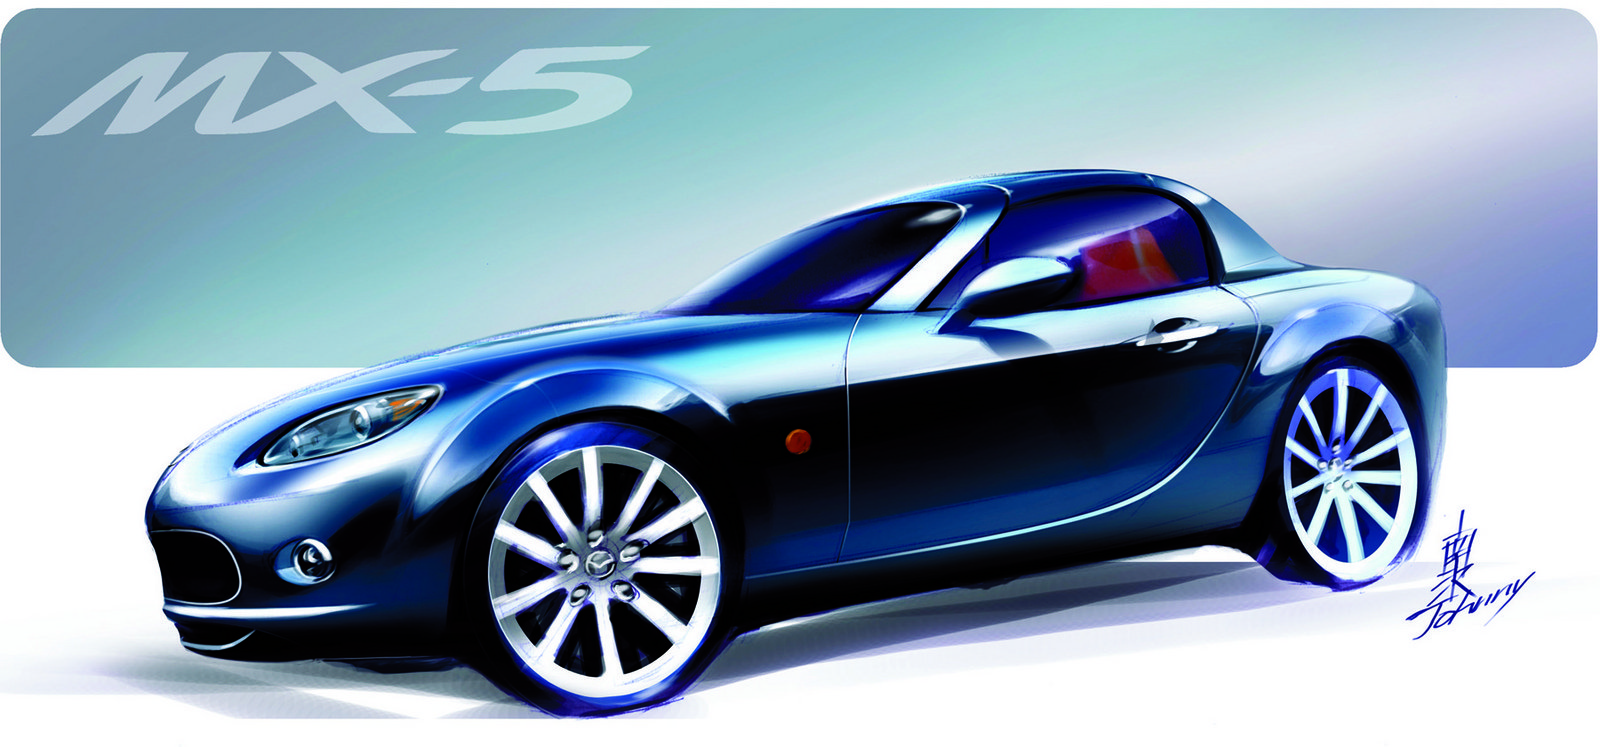 new mazda mx 5 in 2012 now with more balls picture. Black Bedroom Furniture Sets. Home Design Ideas